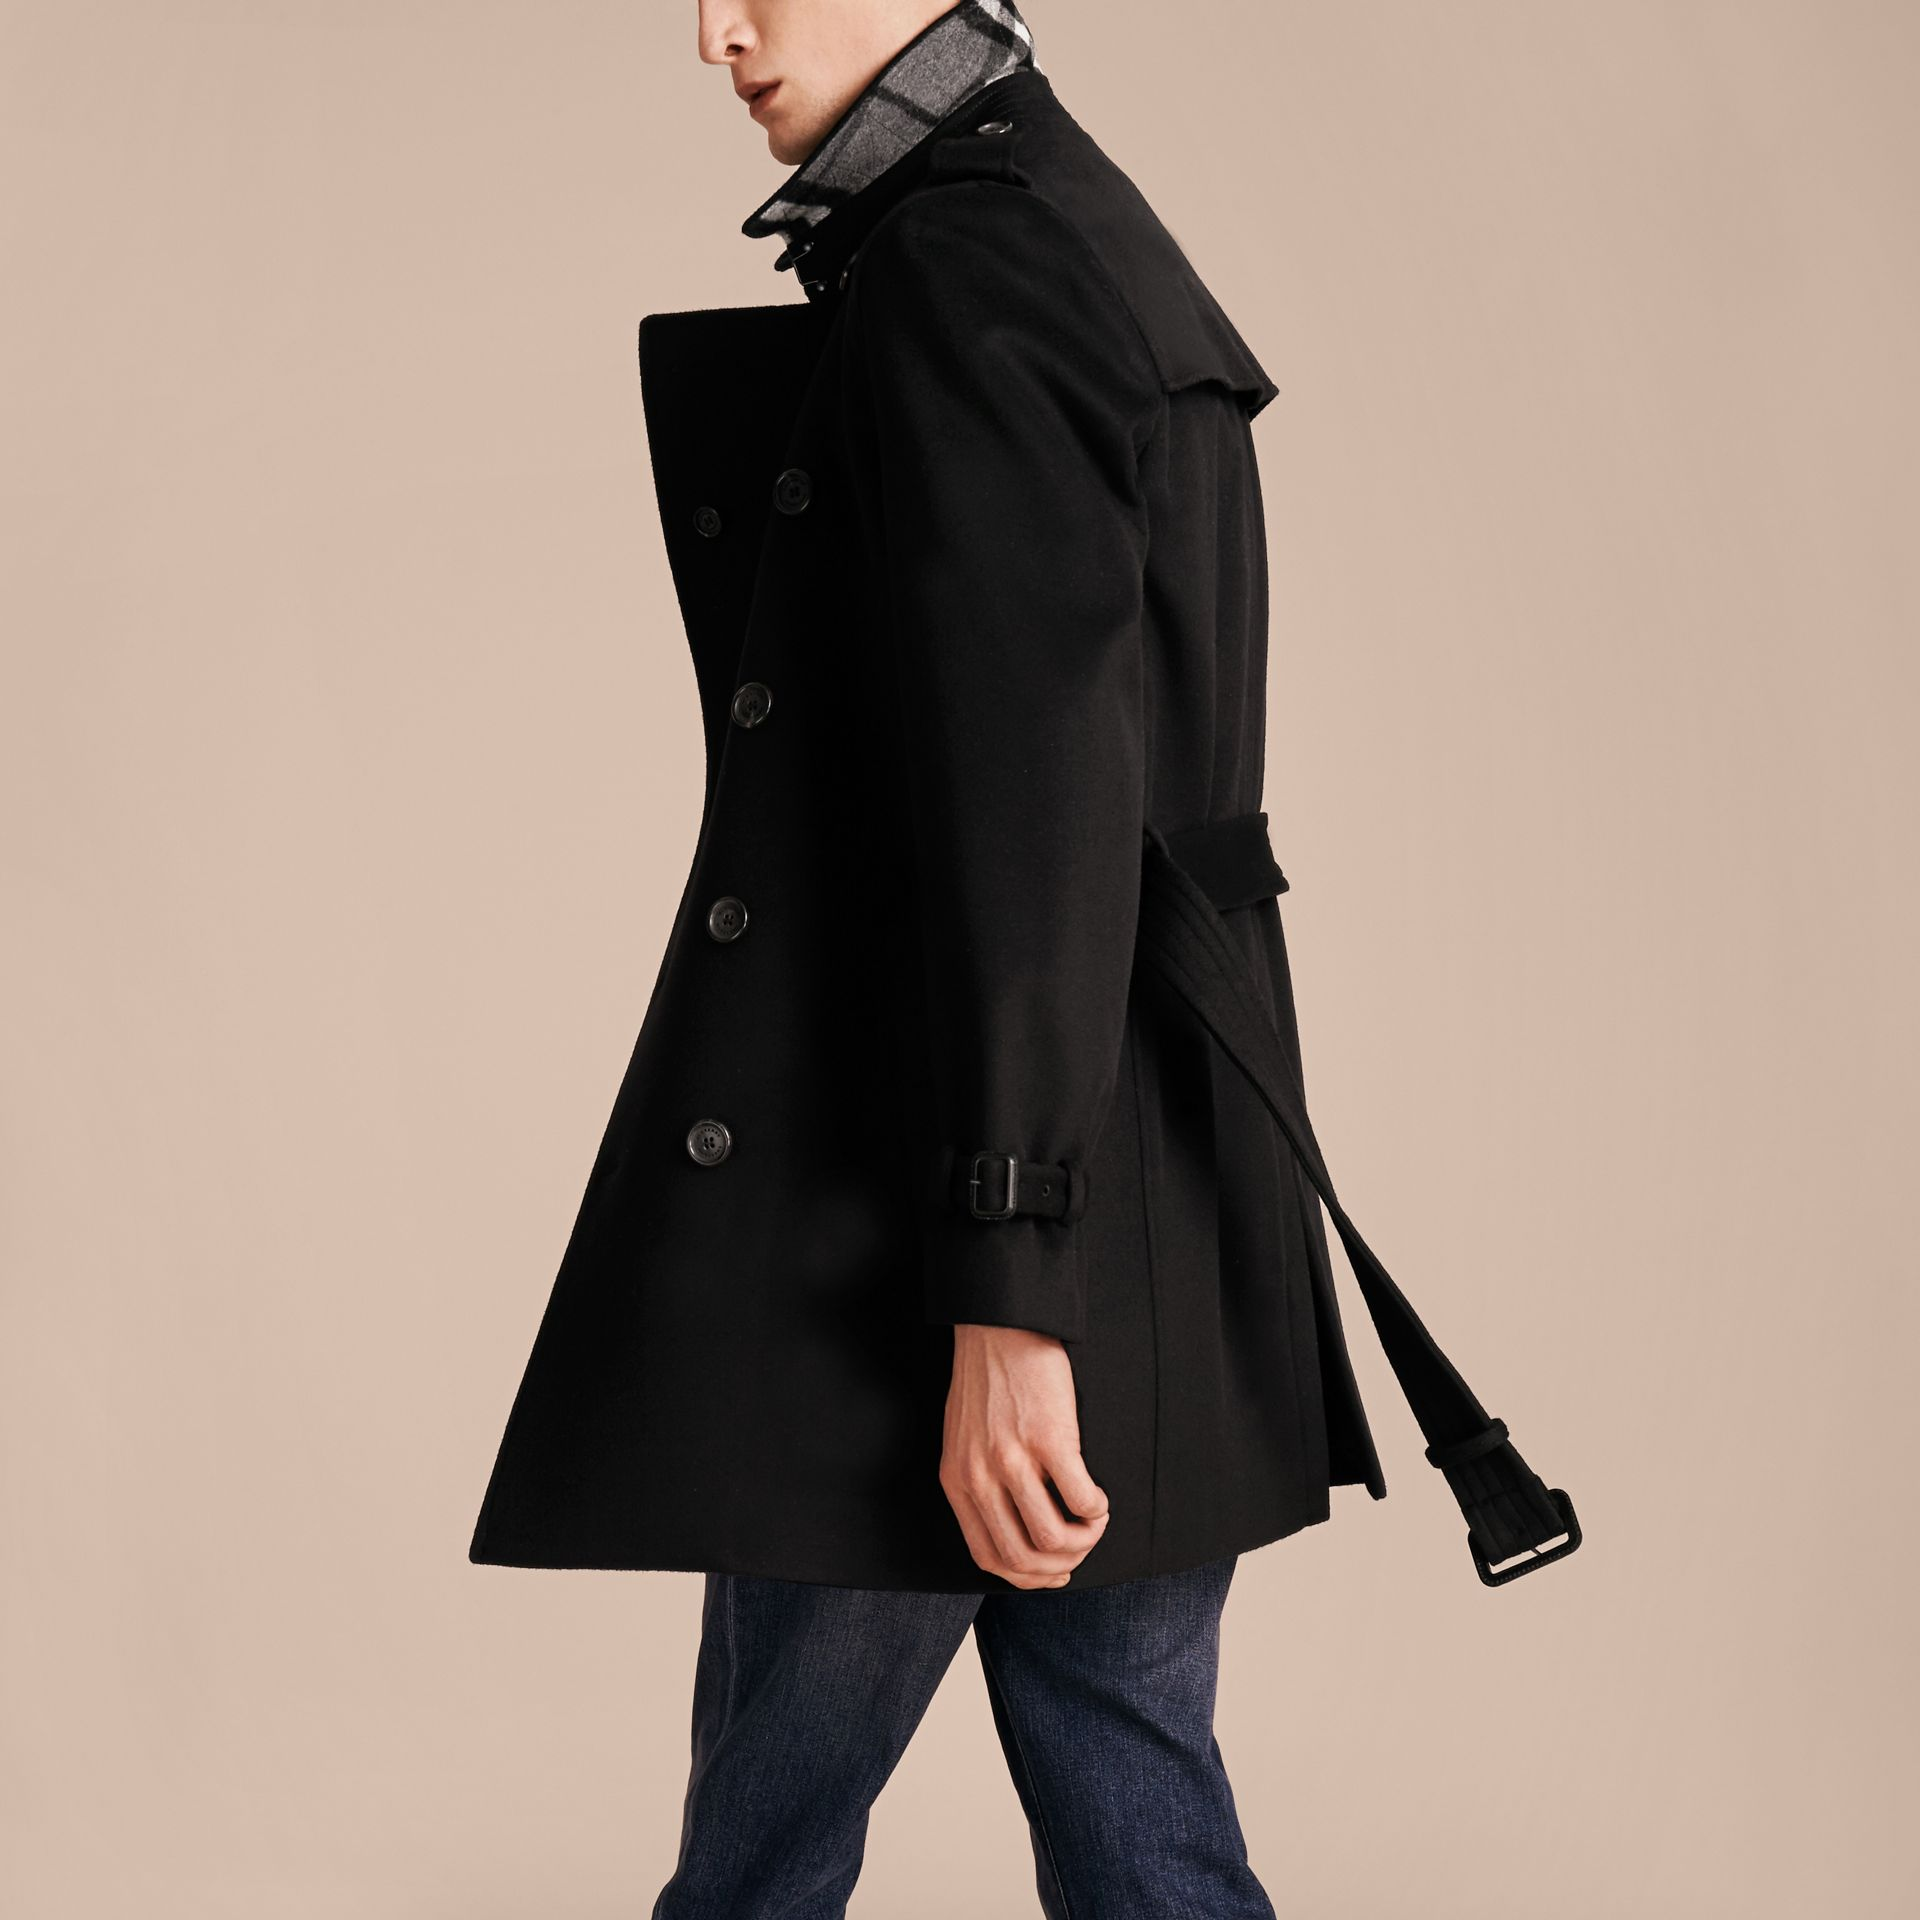 Black Wool Cashmere Trench Coat Black - gallery image 3